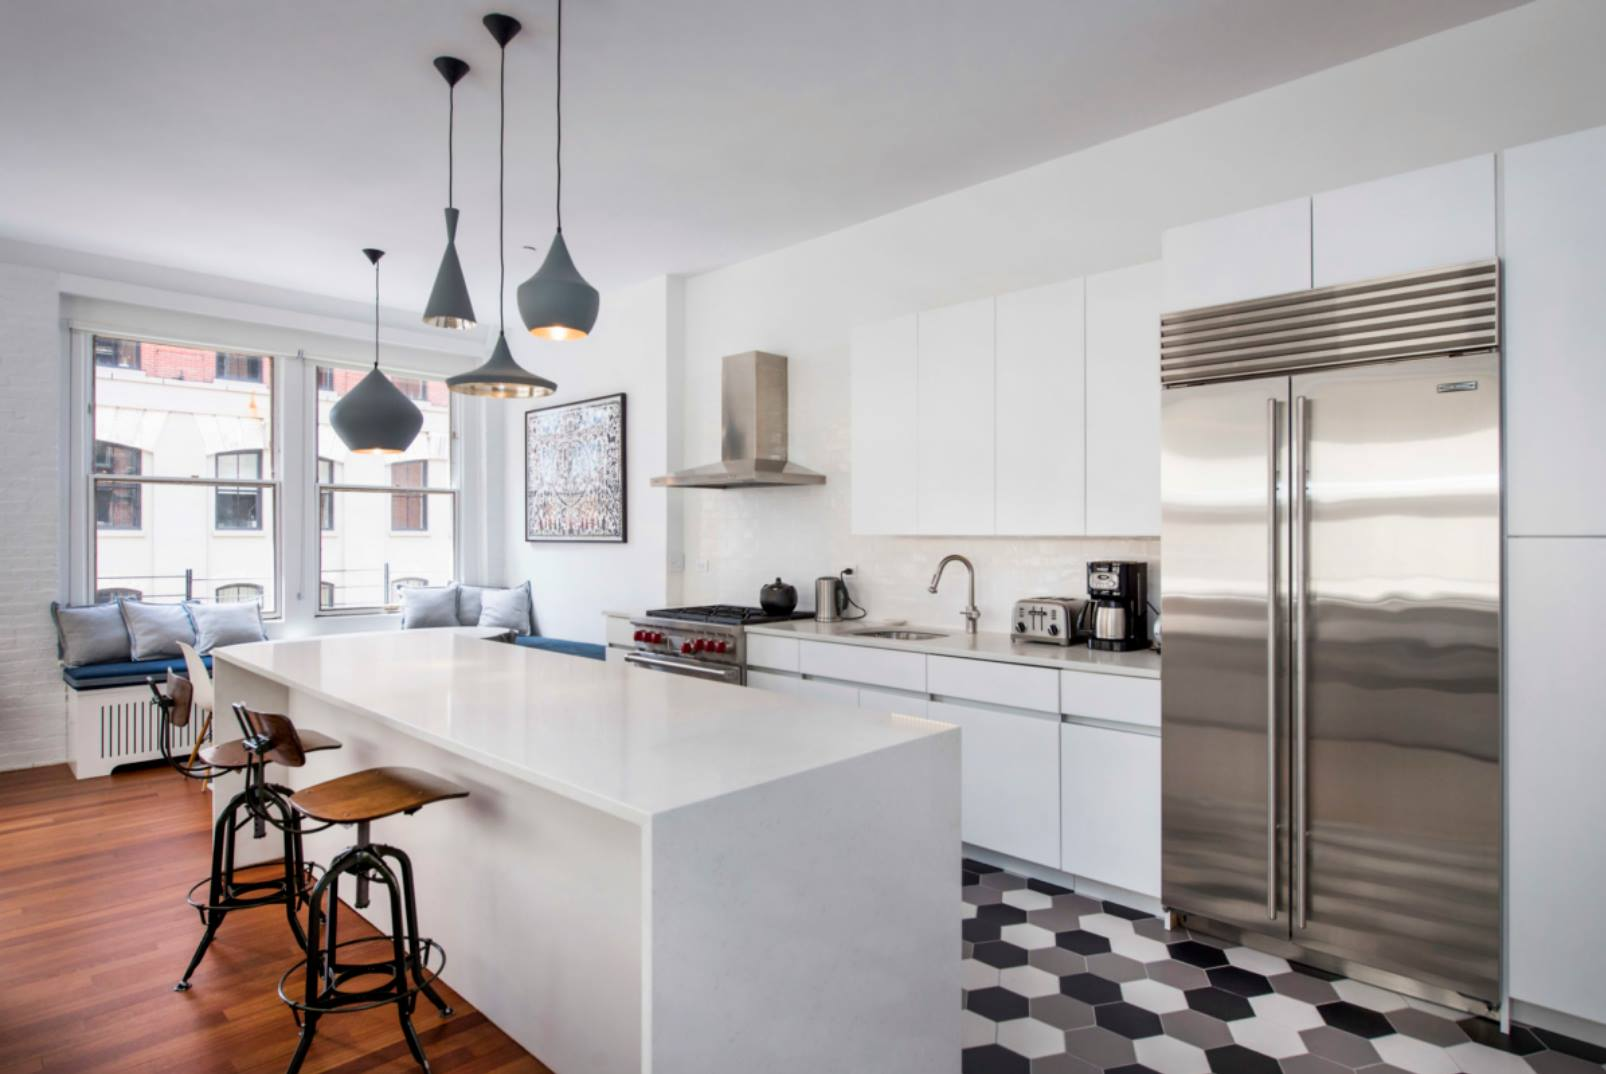 Myhome Design Remodeling Discusses Ideas For Small Kitchen